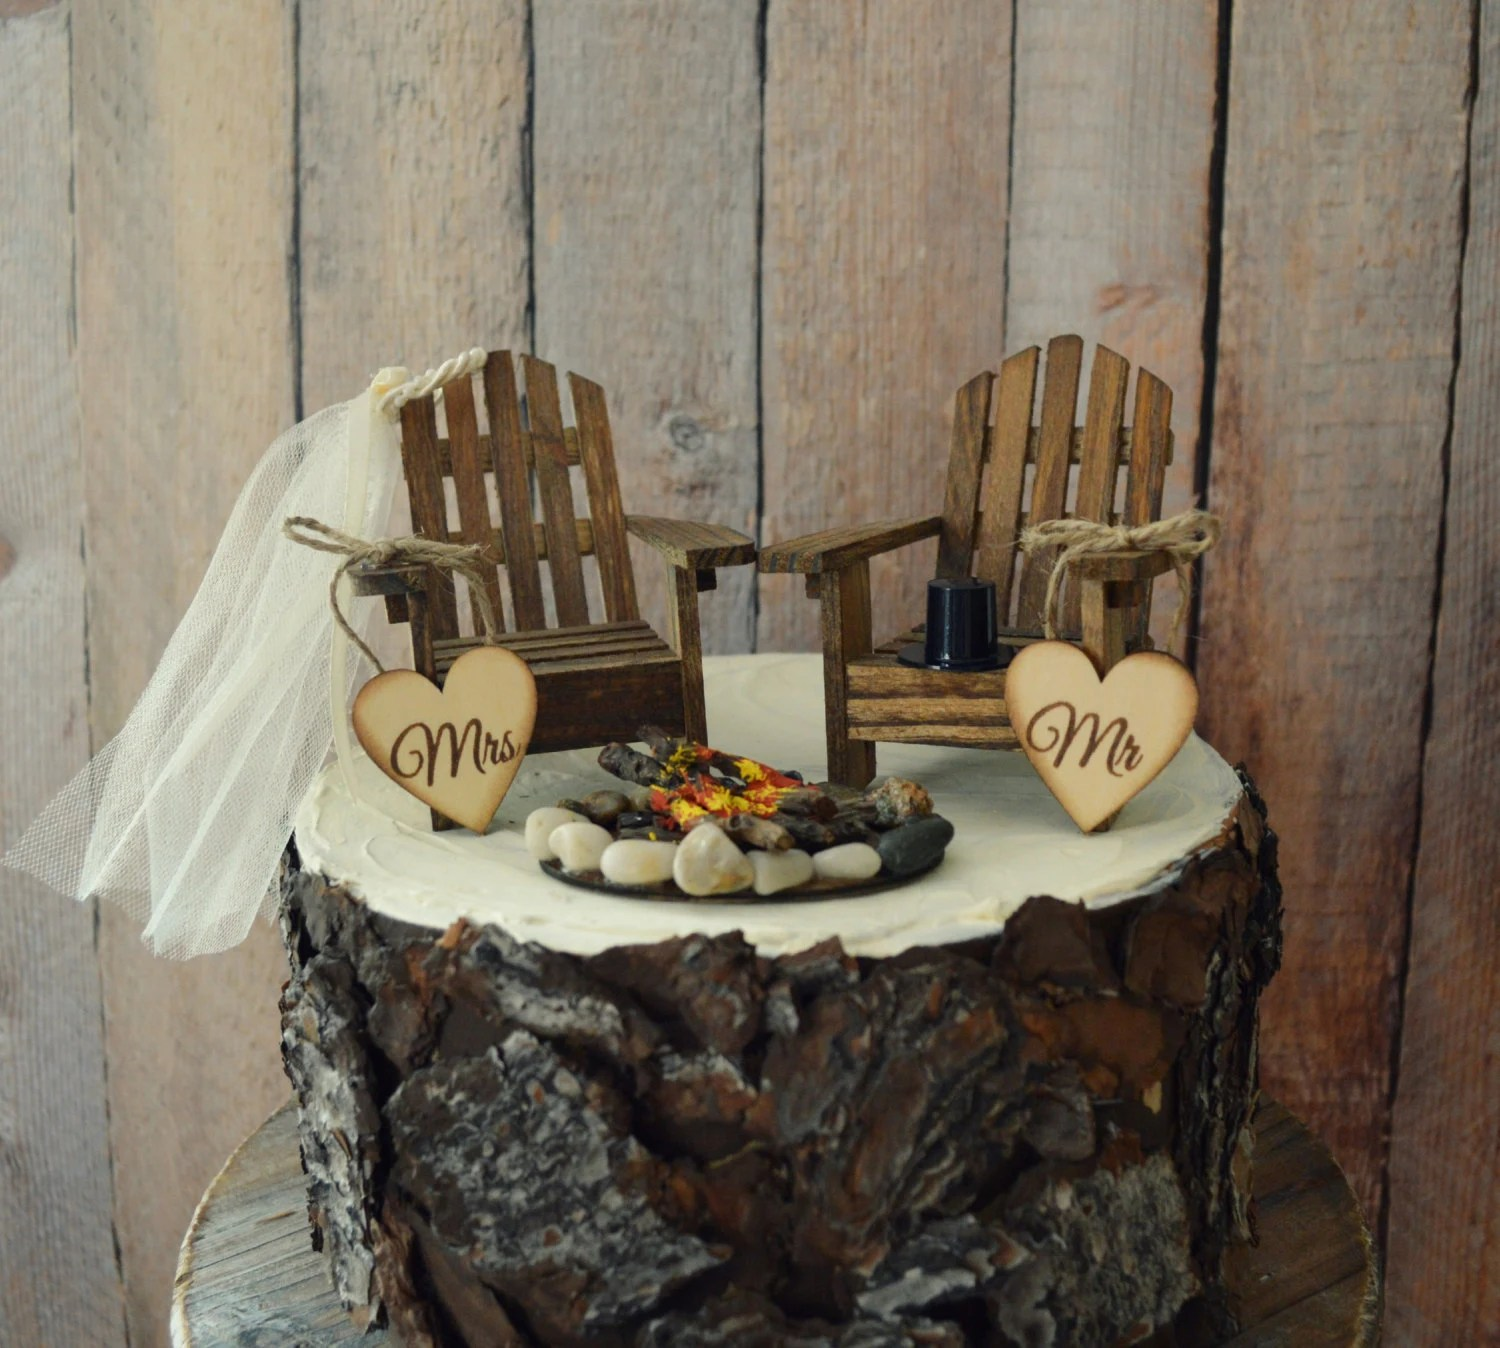 camping rocking chairs wheelchair repair parts country adirondack chair wedding cake topper fishing